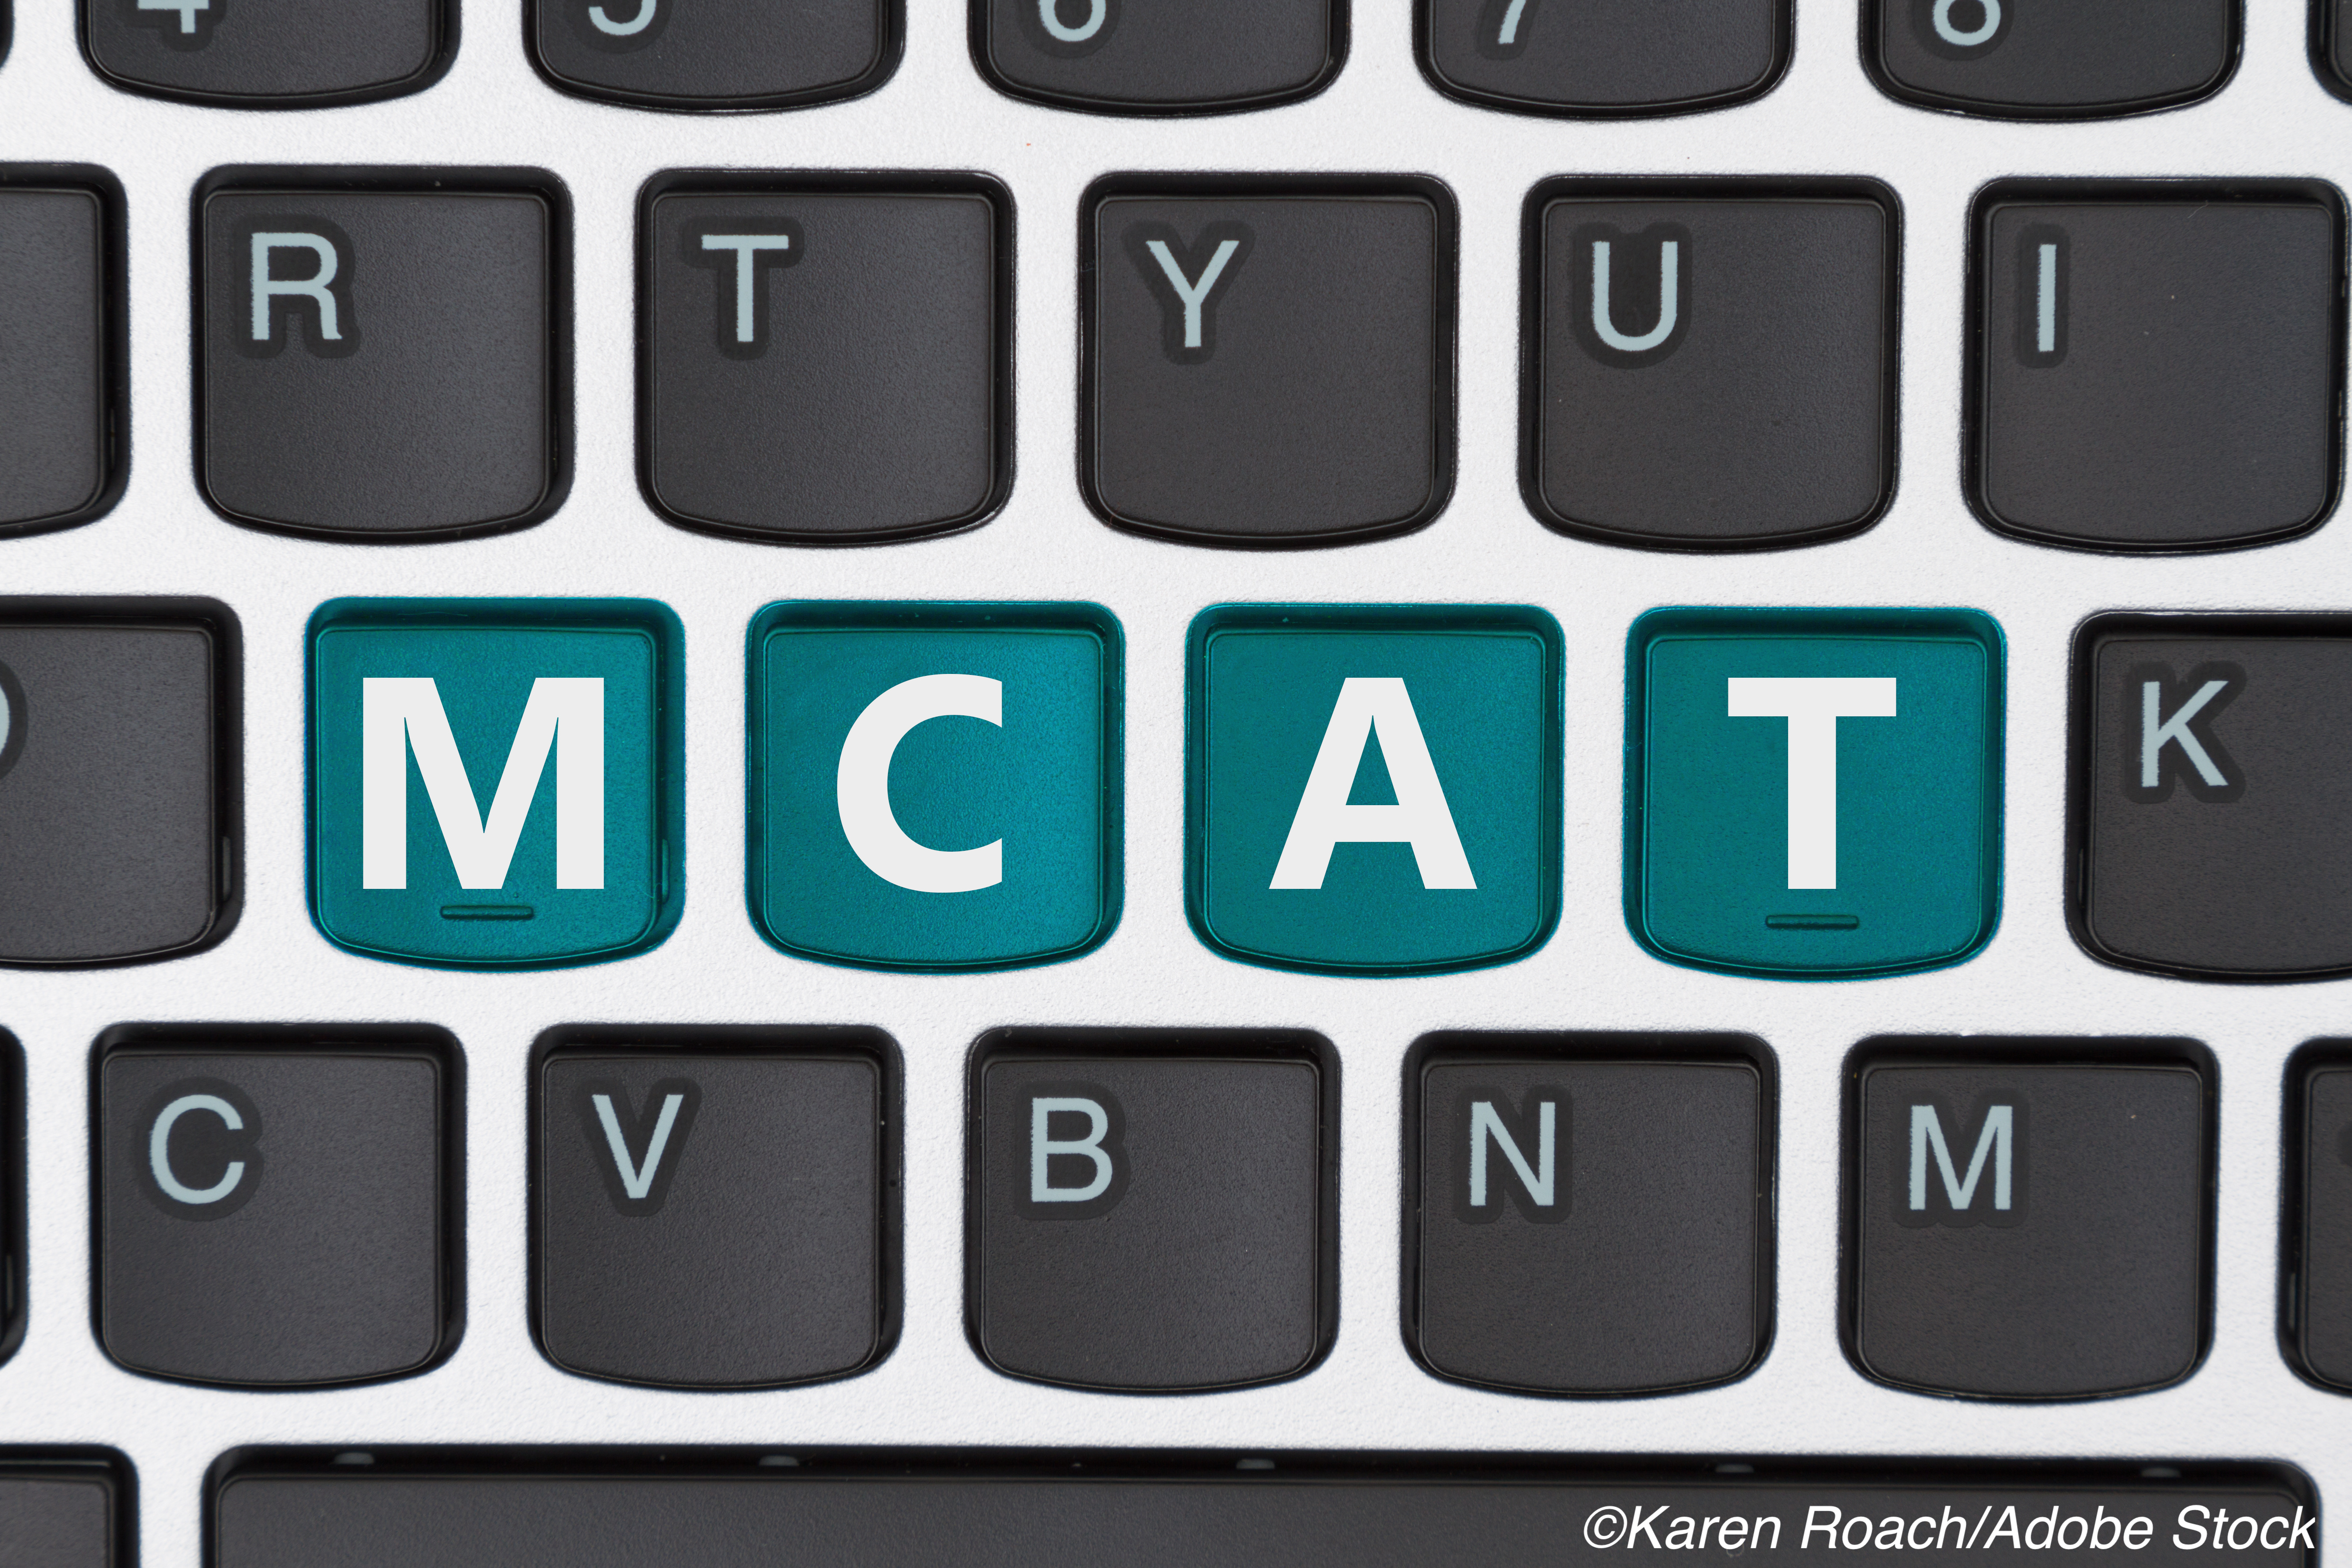 ACP Proposes Waiver of MCAT